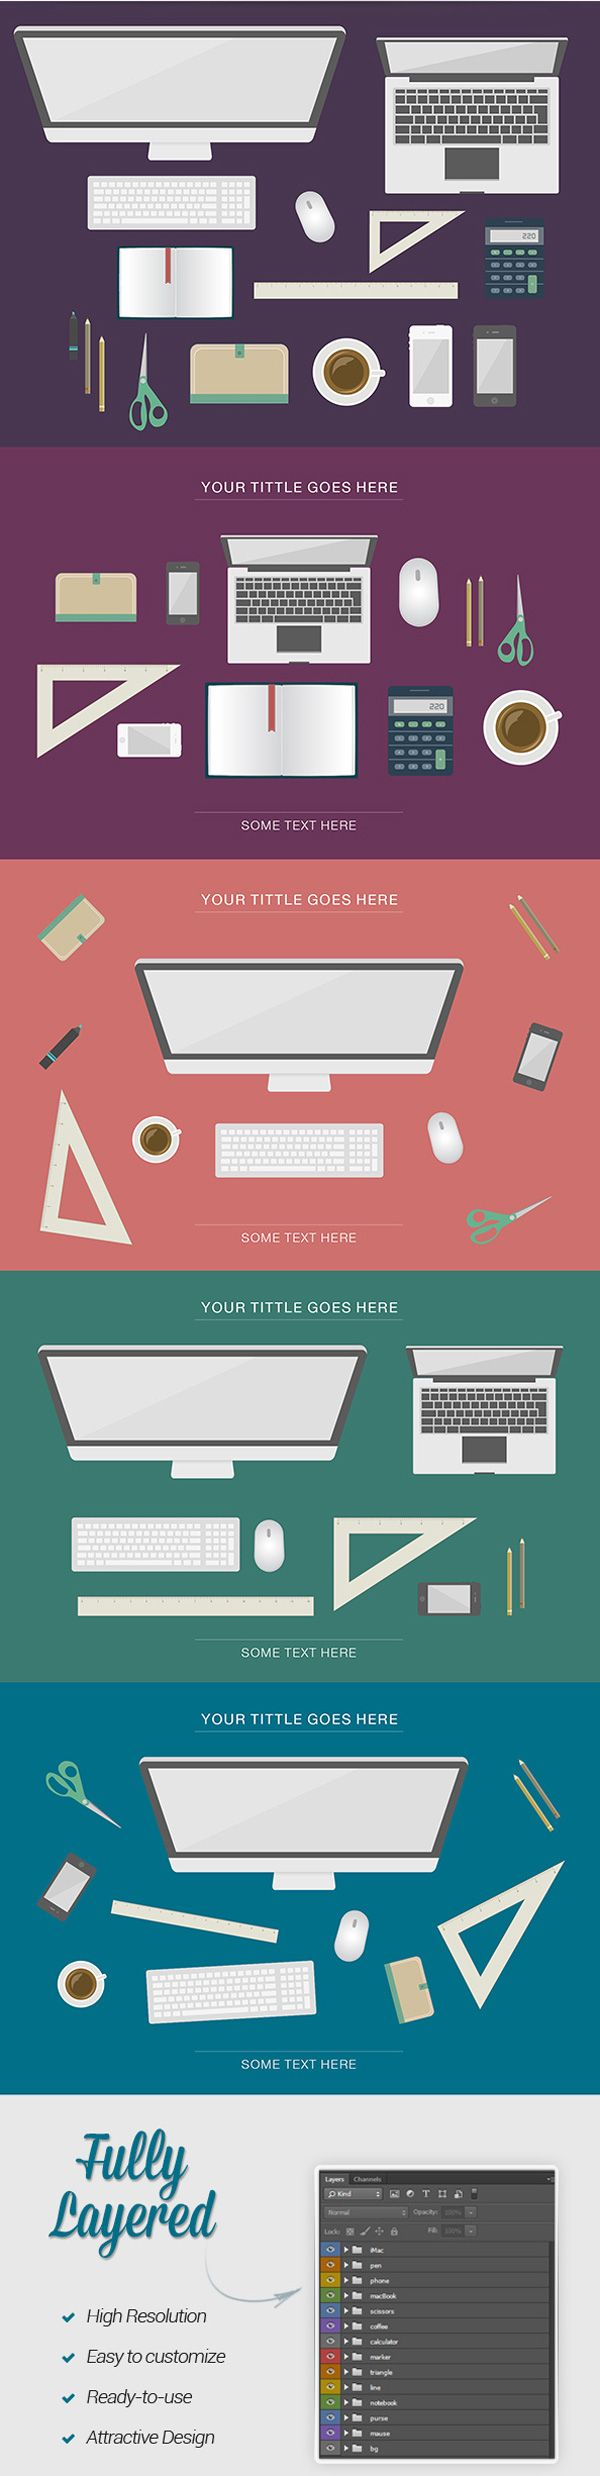 361 best infographies images on Pinterest | Infographic, Random ...